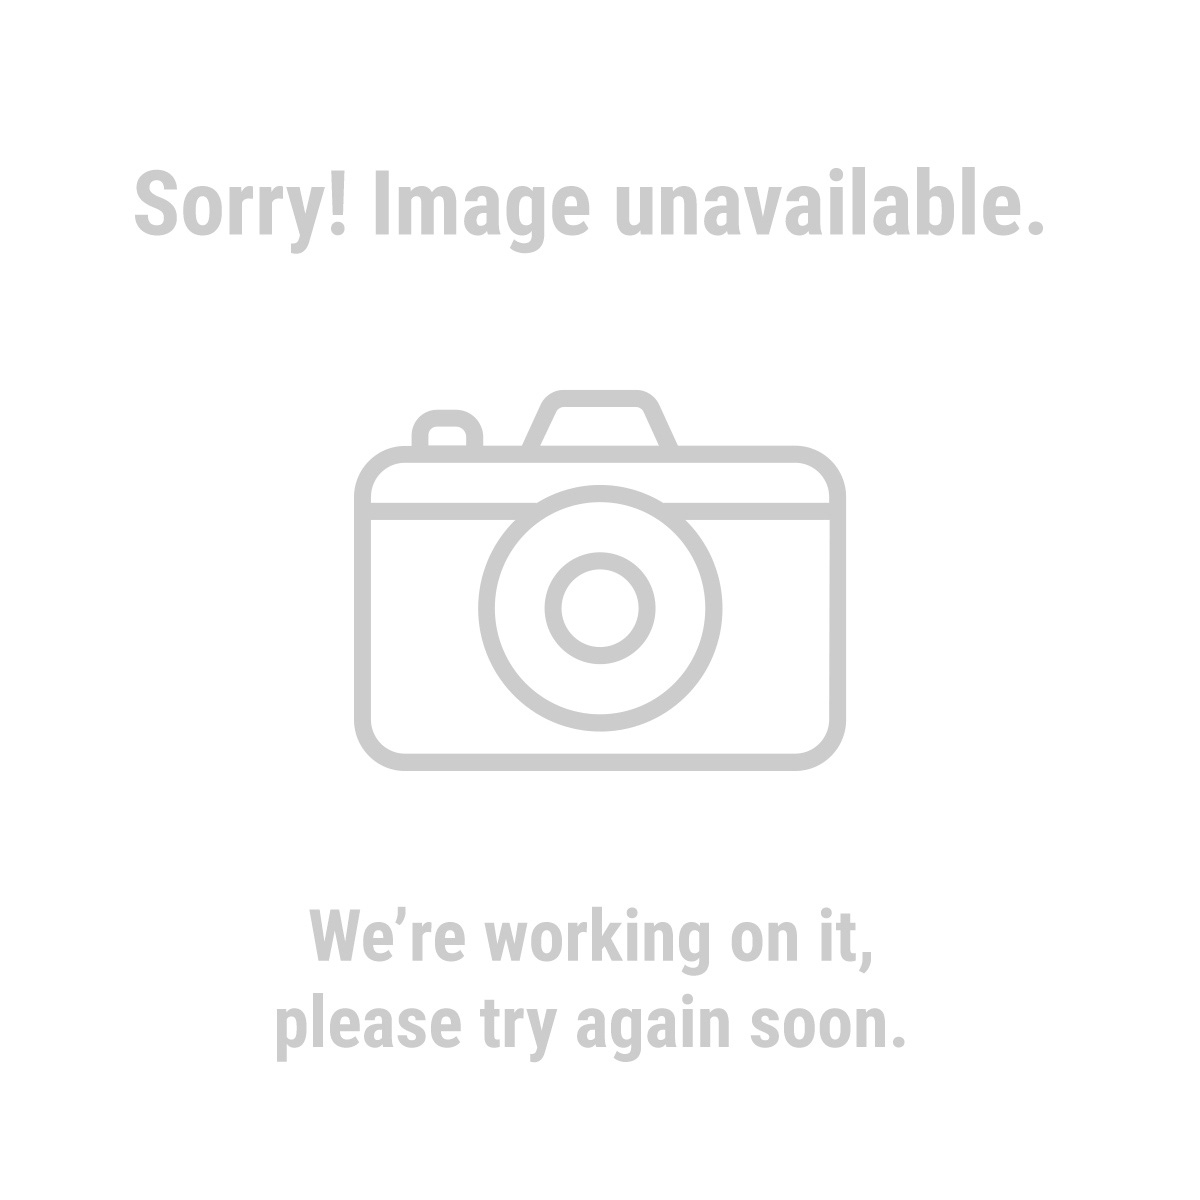 Greenwood 95690 2 Gallon Tank Sprayer